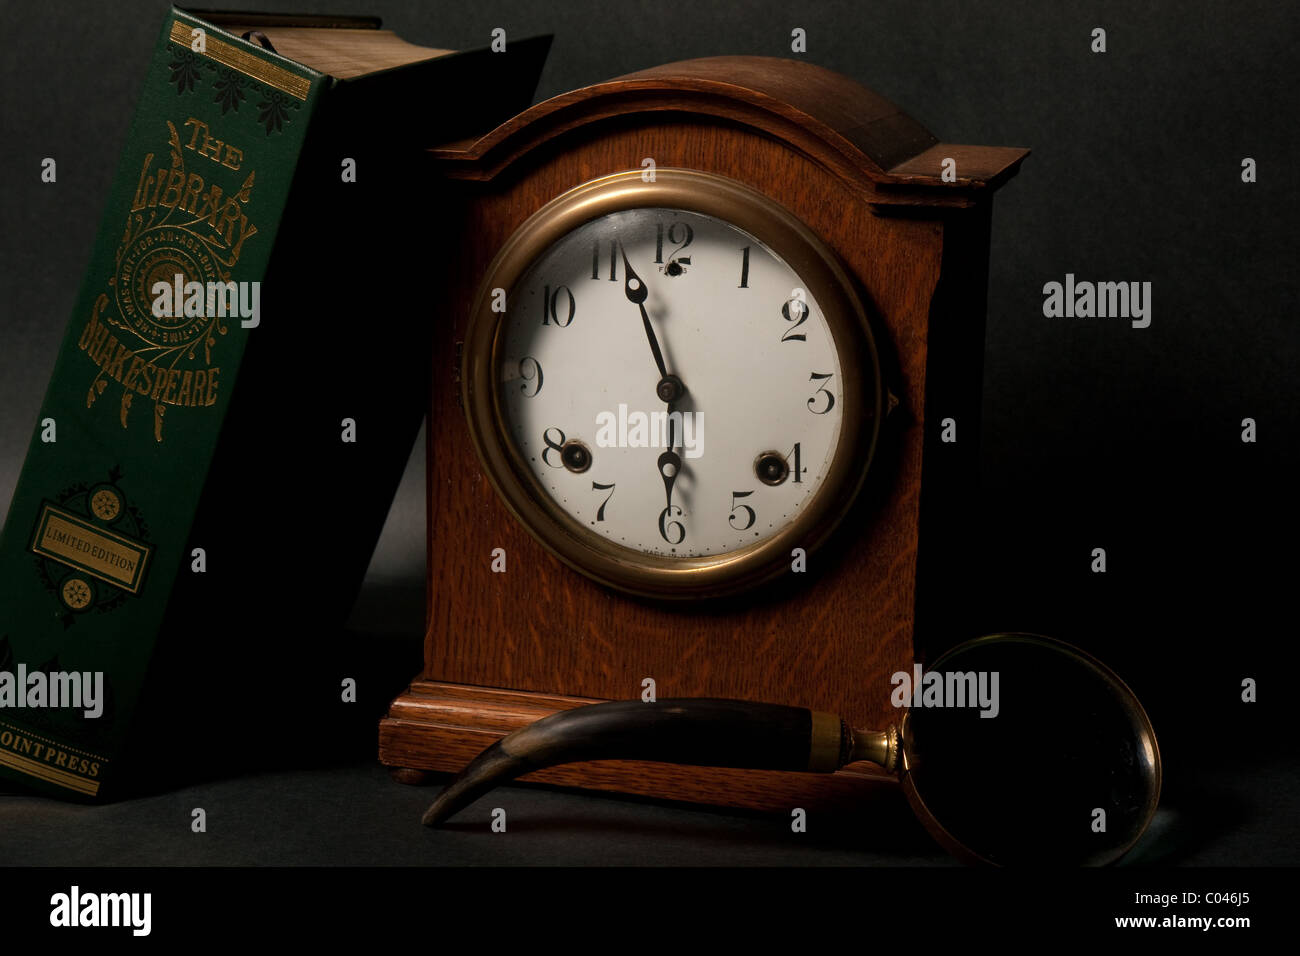 A seth thomes clock and a limited edition Shakespere leather back book, with a black backdrop - Stock Image